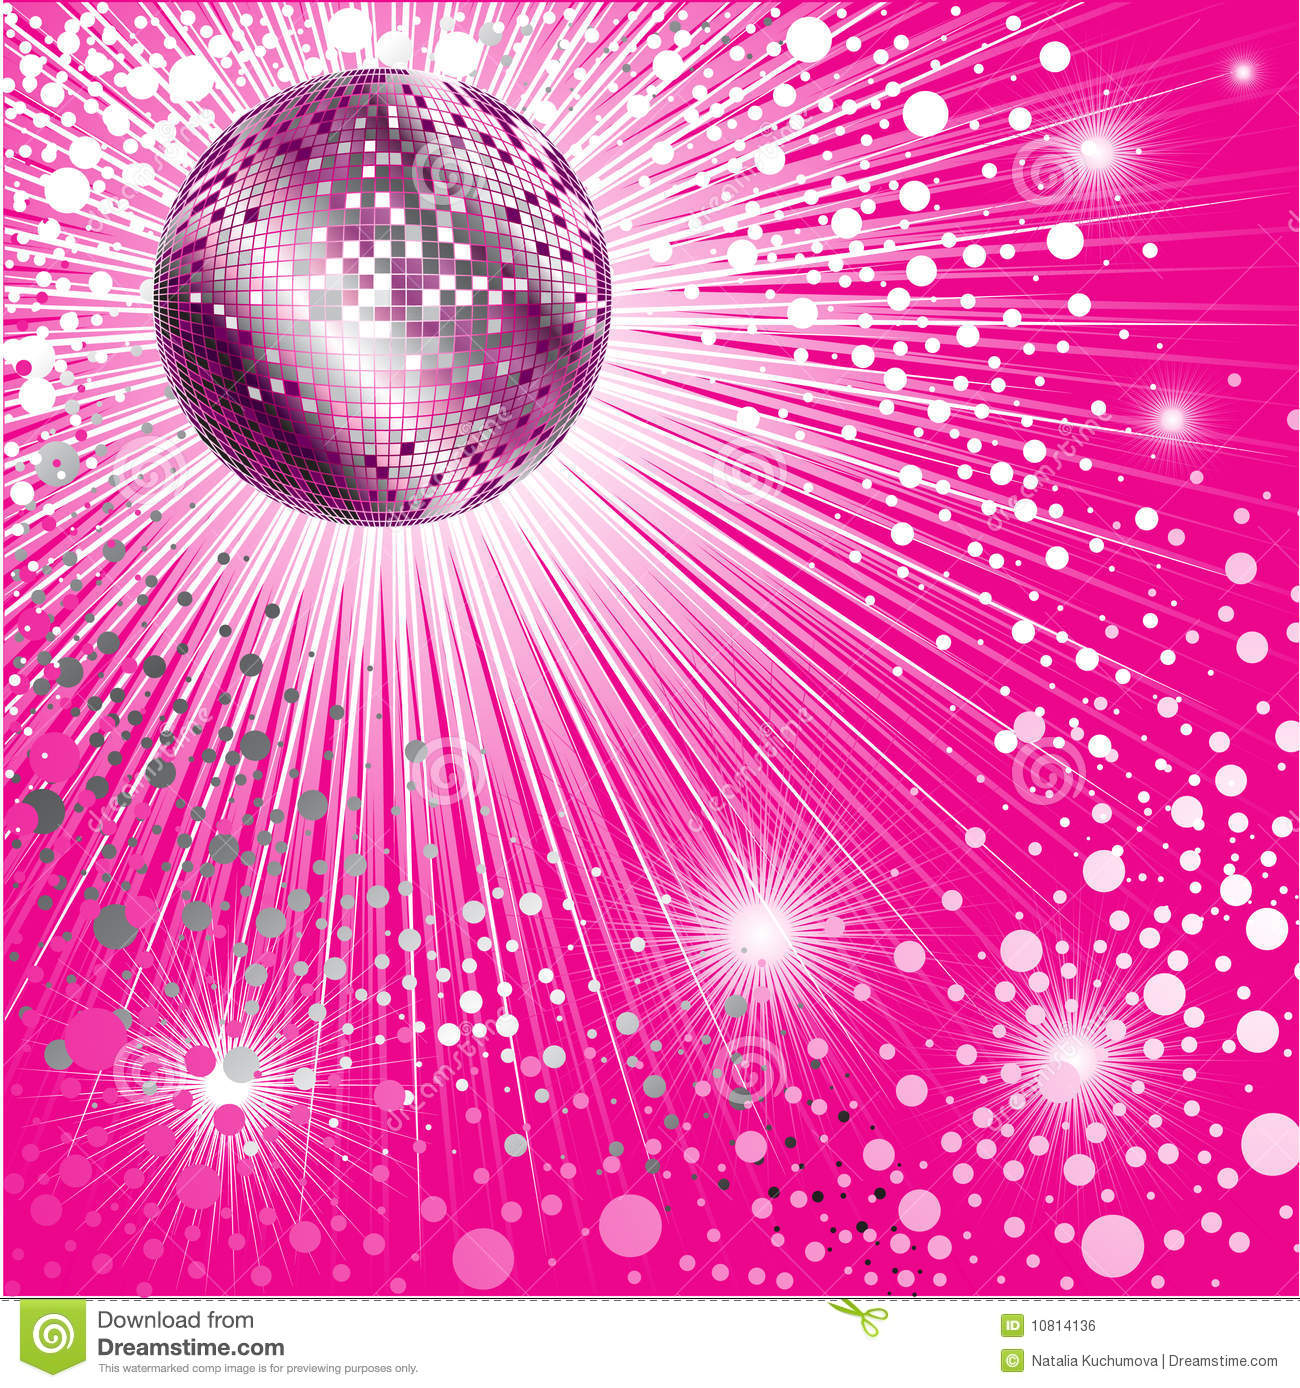 Background - CD Cover design with disco-ball